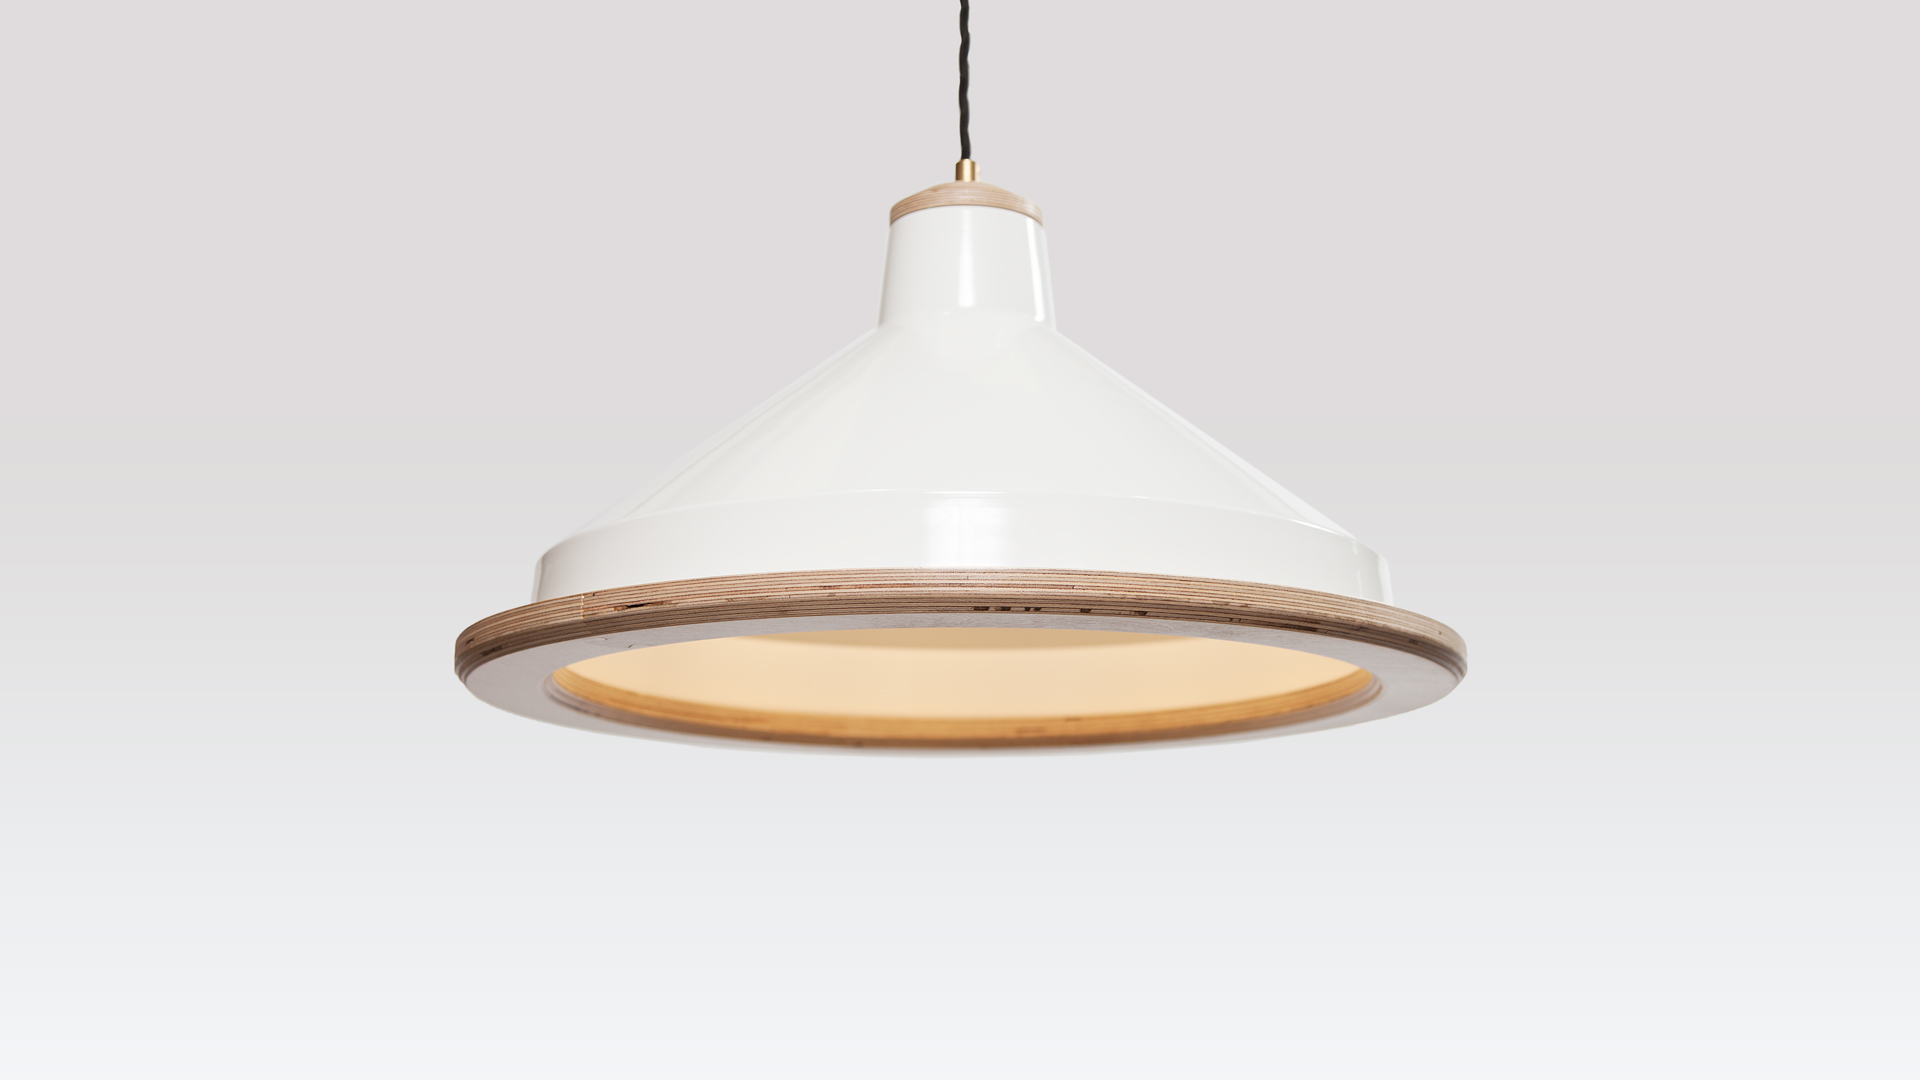 As Well Birch Ply The Trafford Pendant Lights Can Be Finished With An Oak Trim On Outer Rim And Top Adding To High Quality Design